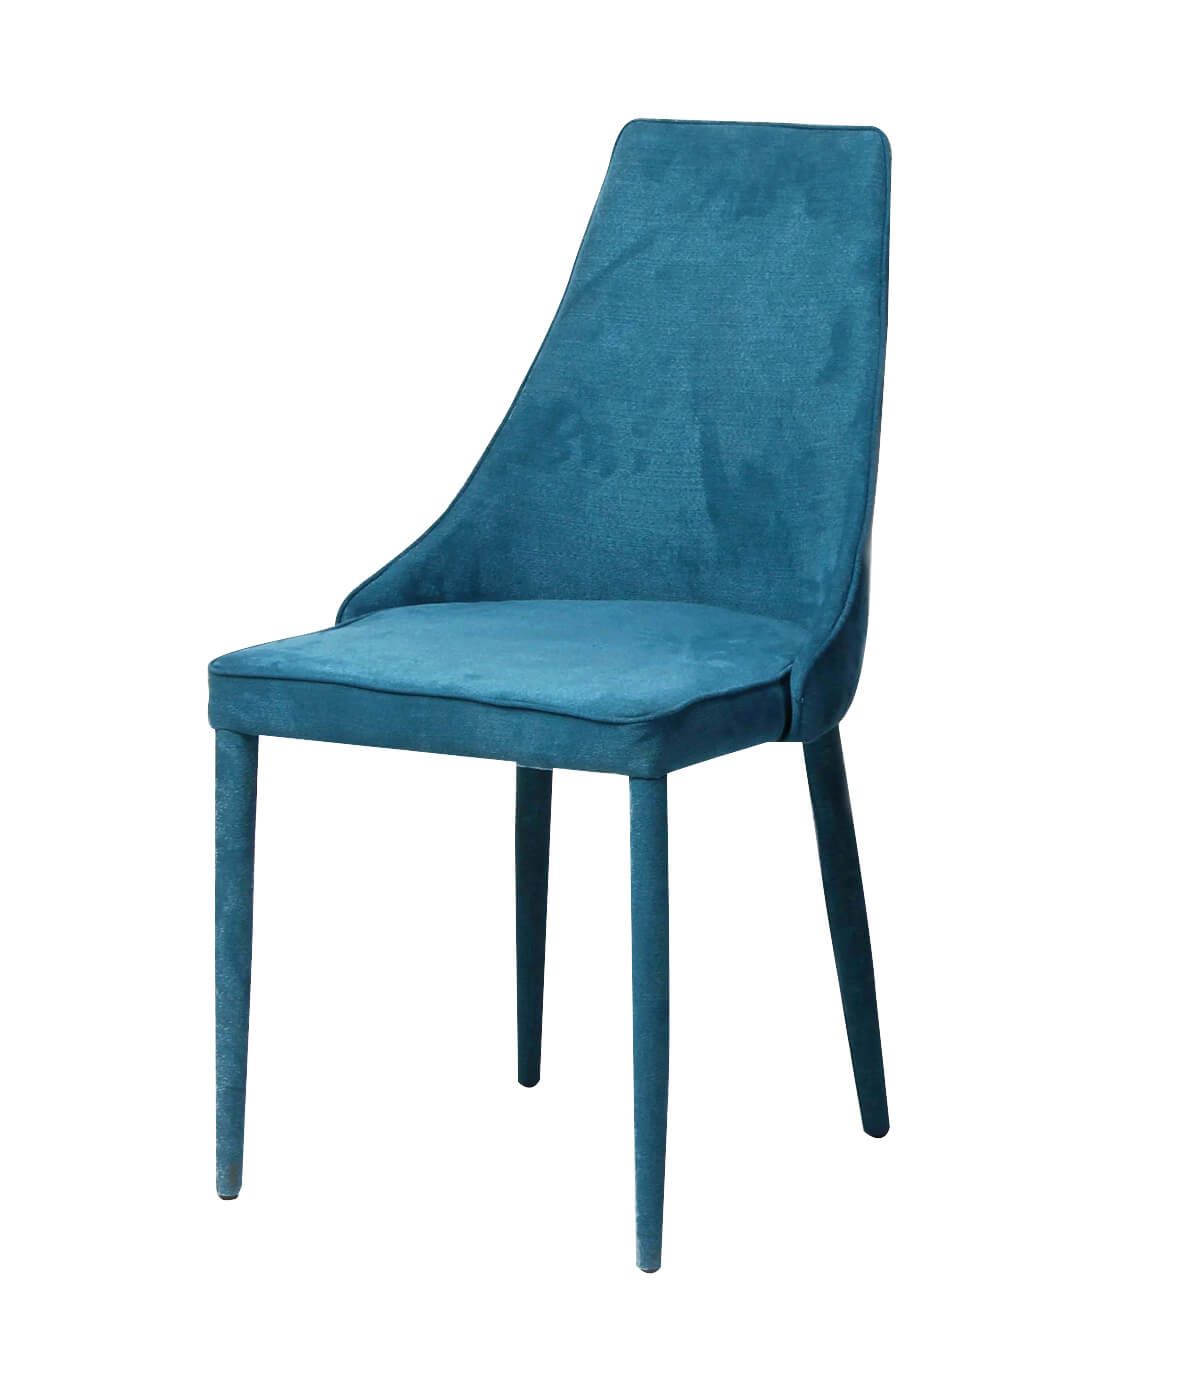 teal dining chairs furniture manchester furniture uk manchester 11531